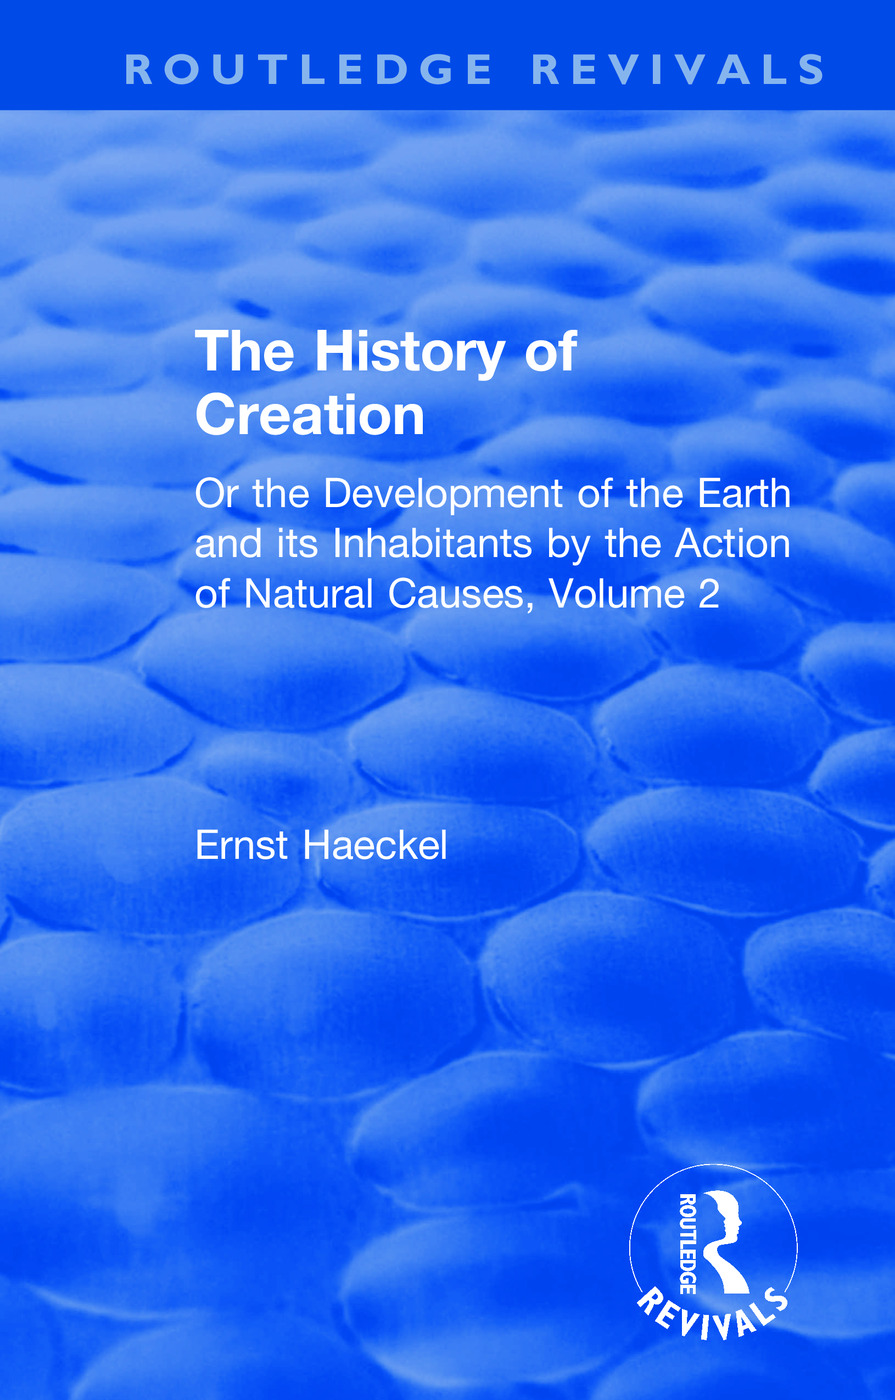 The History of Creation: Or the Development of the Earth and its Inhabitants by the Action of Natural Causes, Volume 2 book cover